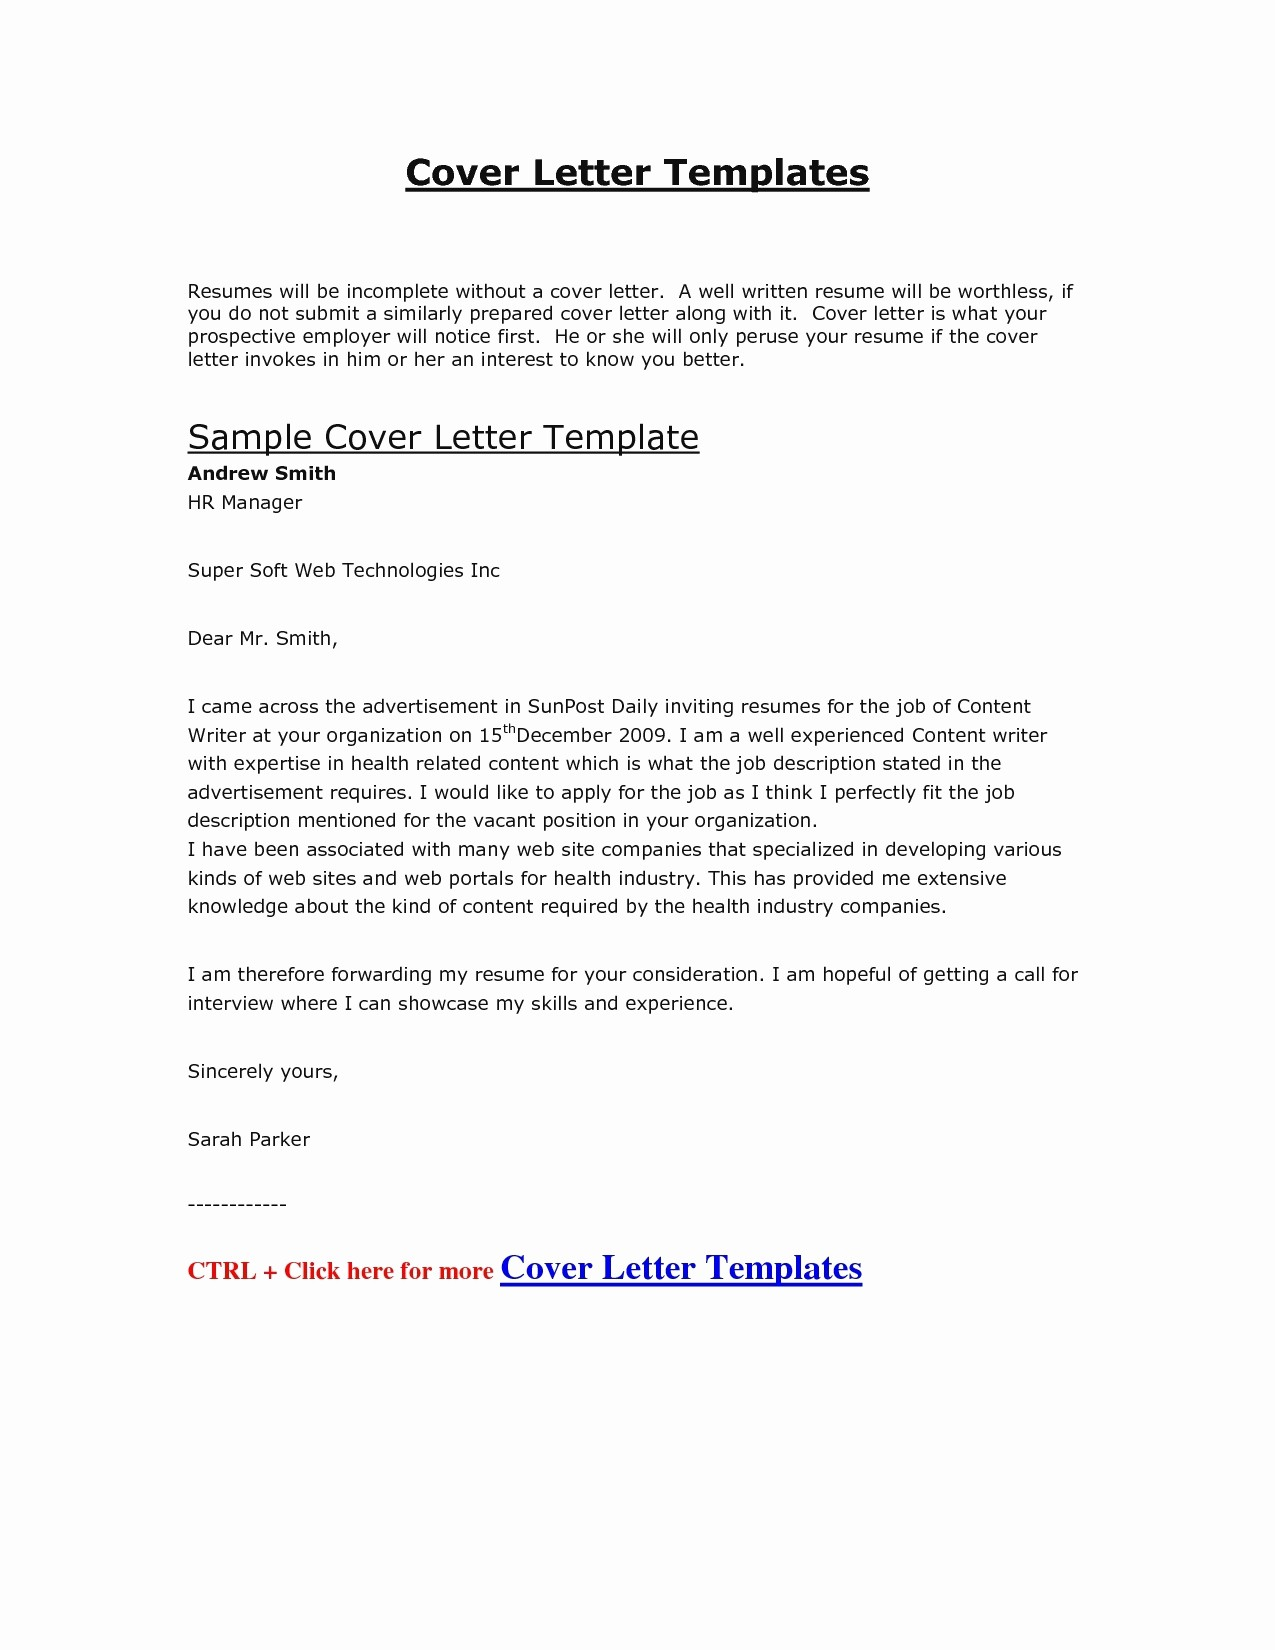 Free Resume Cover Letter Template Luxury Resume Cover Letter Template 2017